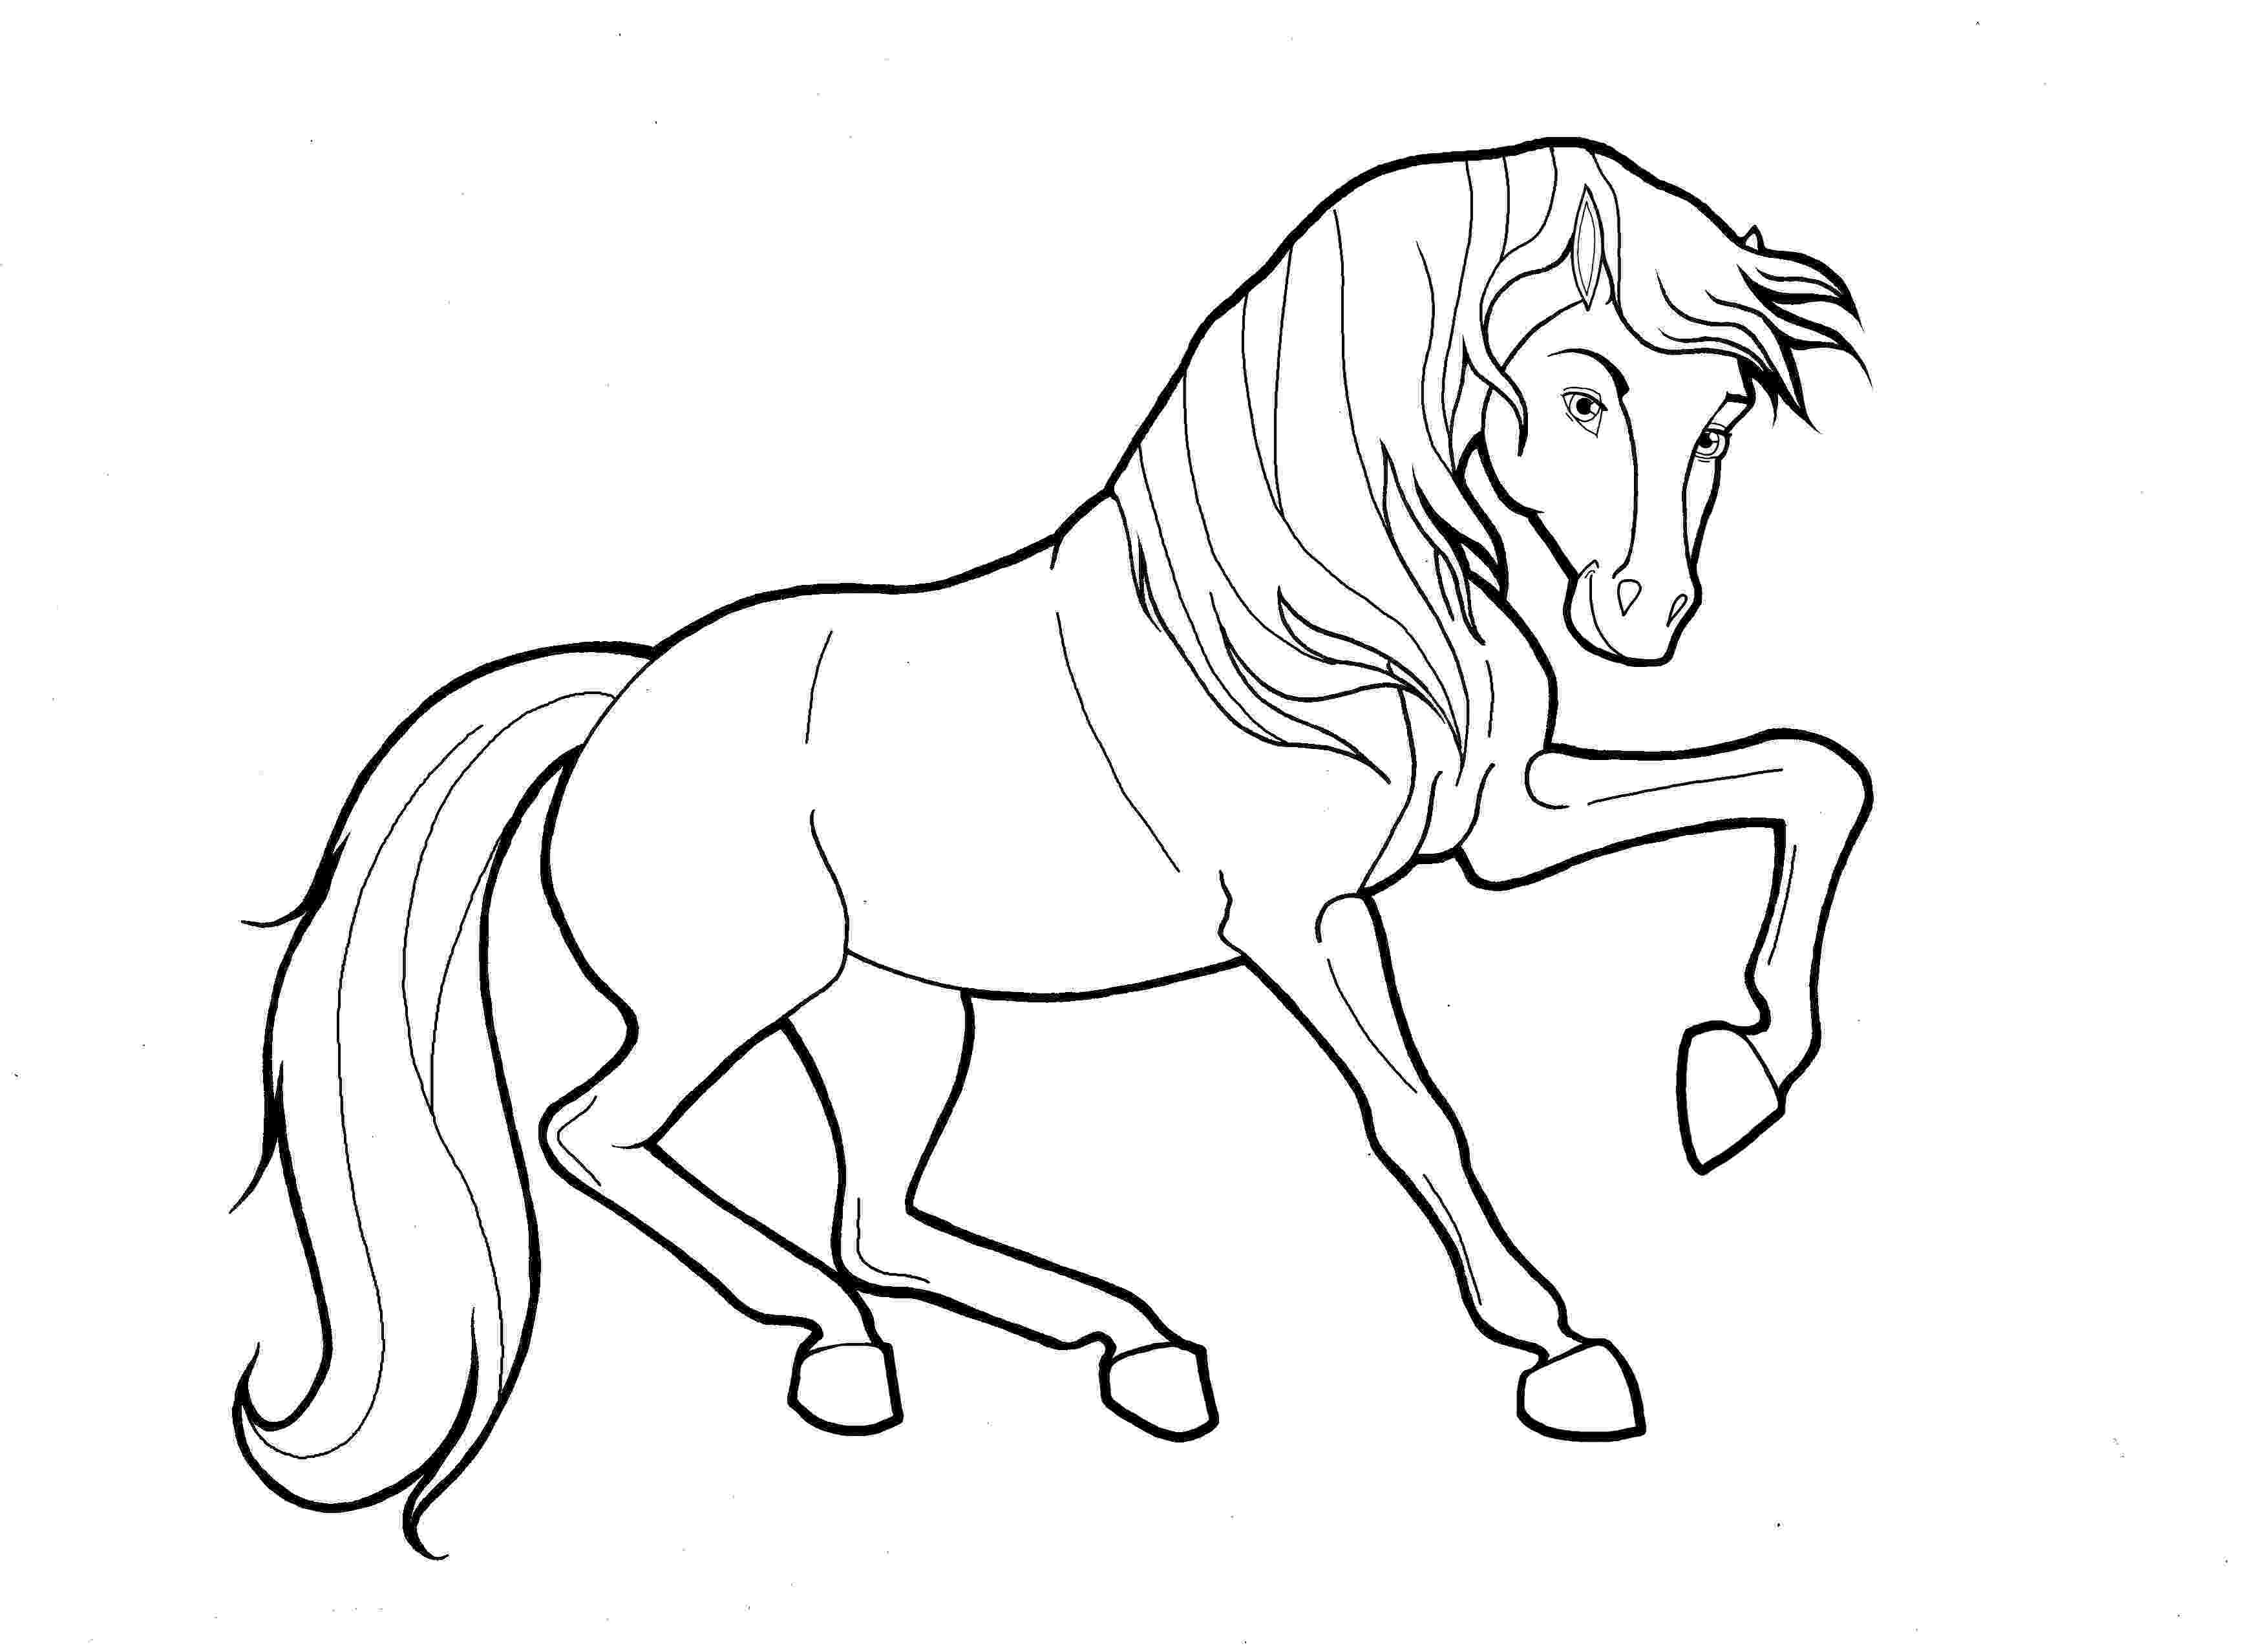 coloring pics of horses horse coloring pages for adults best coloring pages for kids pics of horses coloring